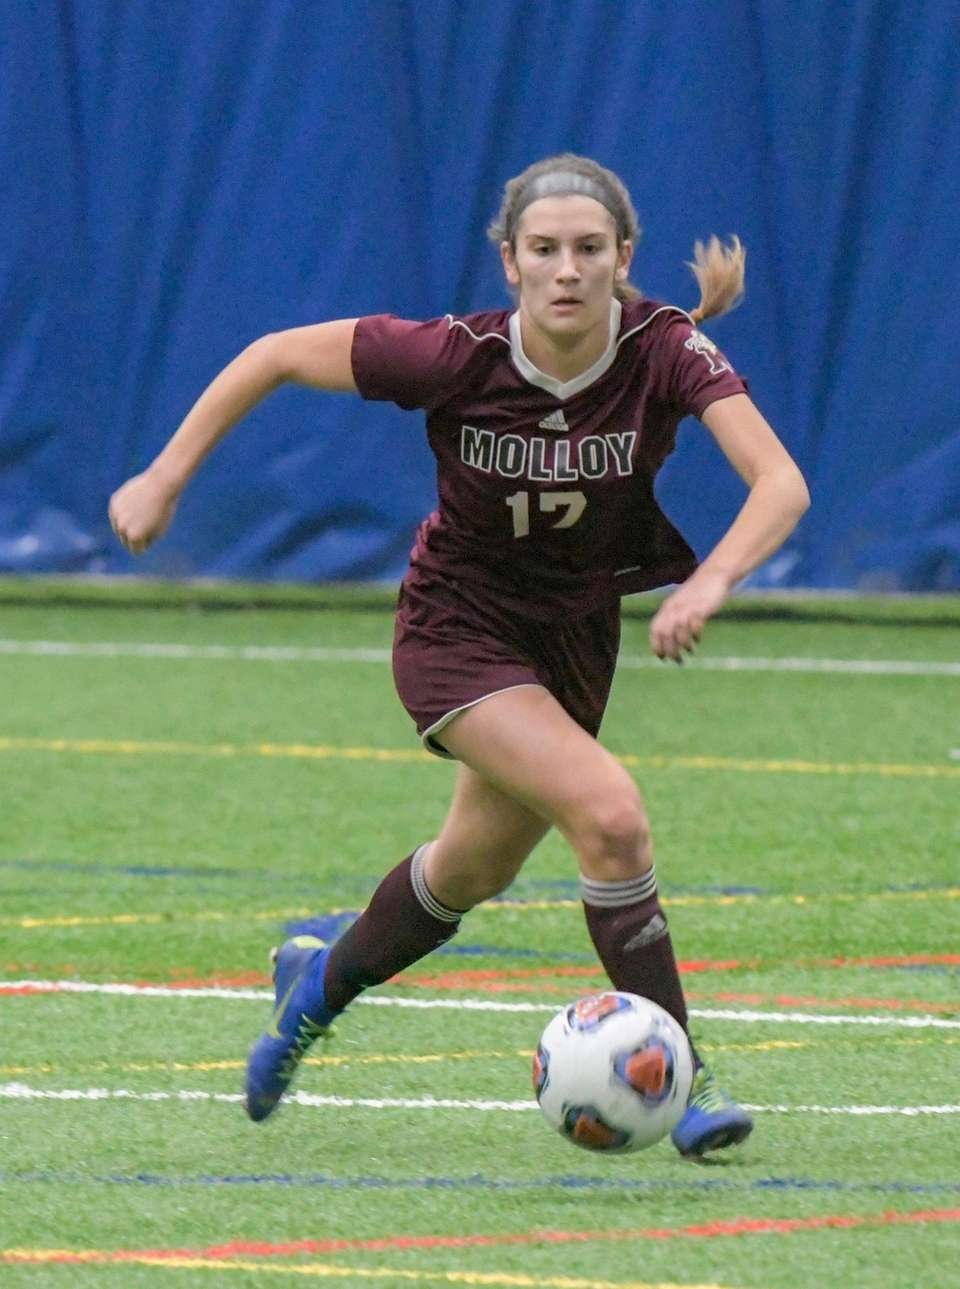 Molloy's Sabrina Bell, takes the ball down the